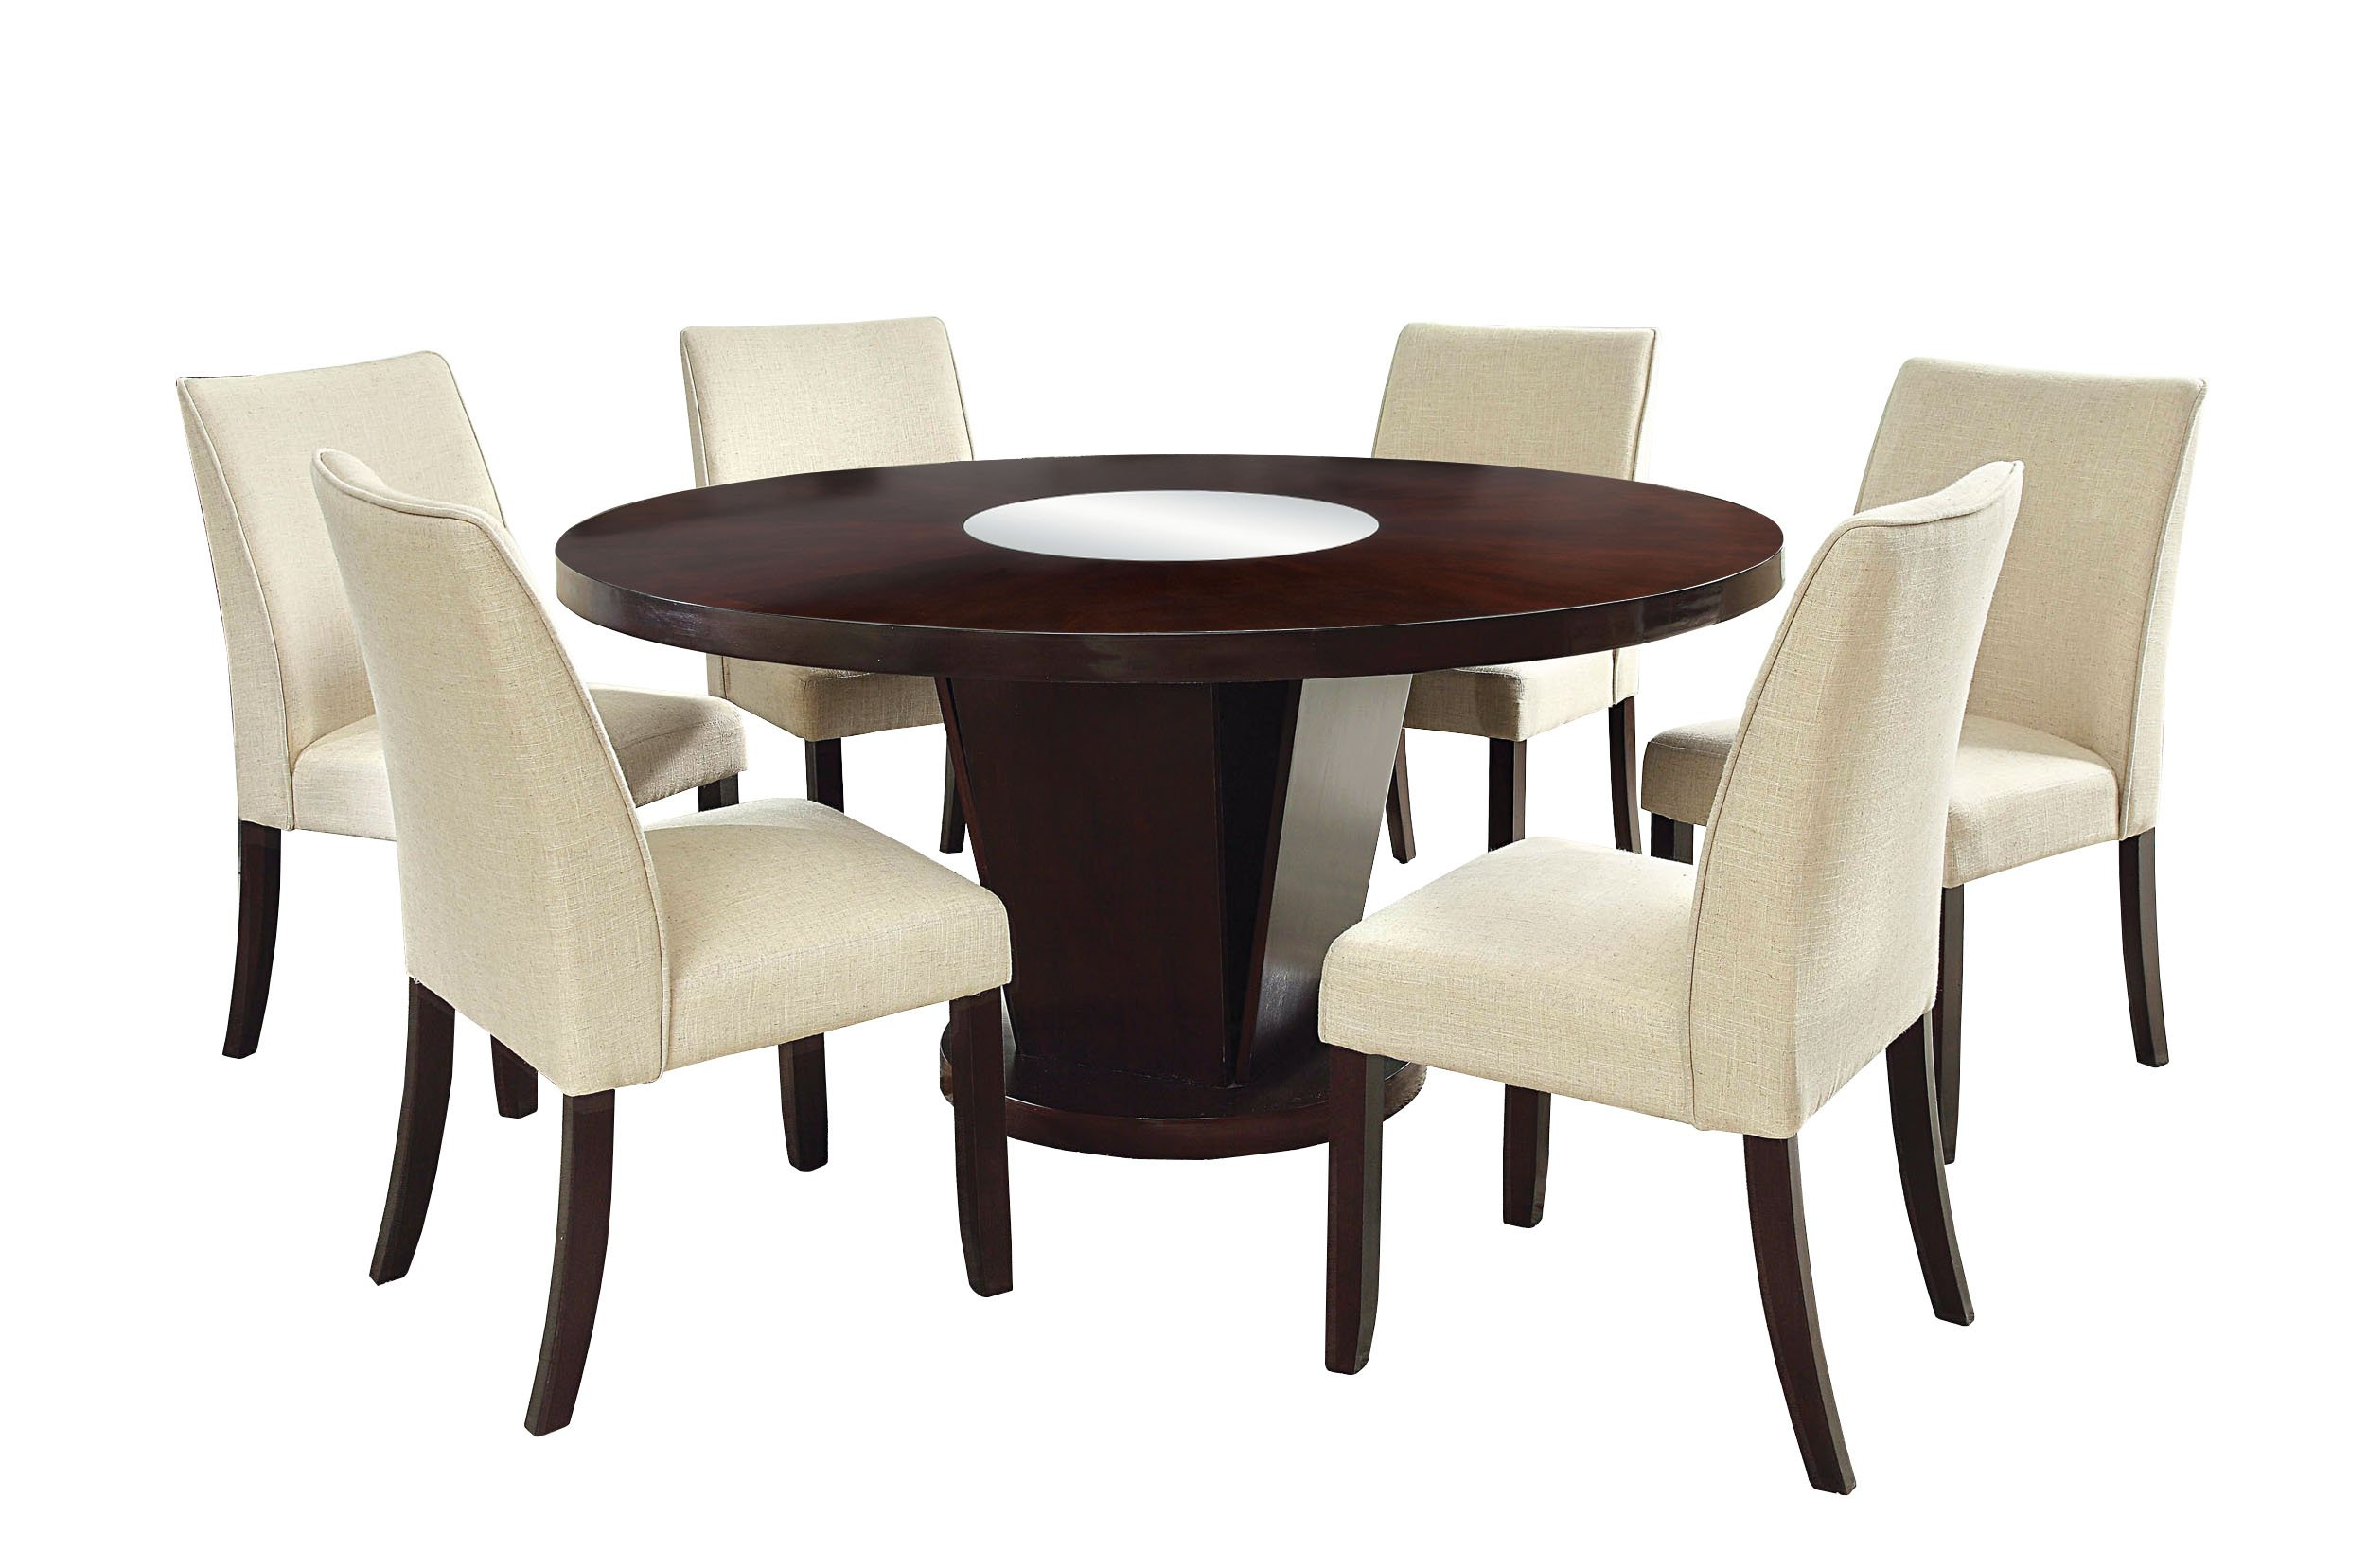 furniture of america dining sets. Furniture Of America Telstars 7-Piece Round Table Dining Set, Espresso Sets A